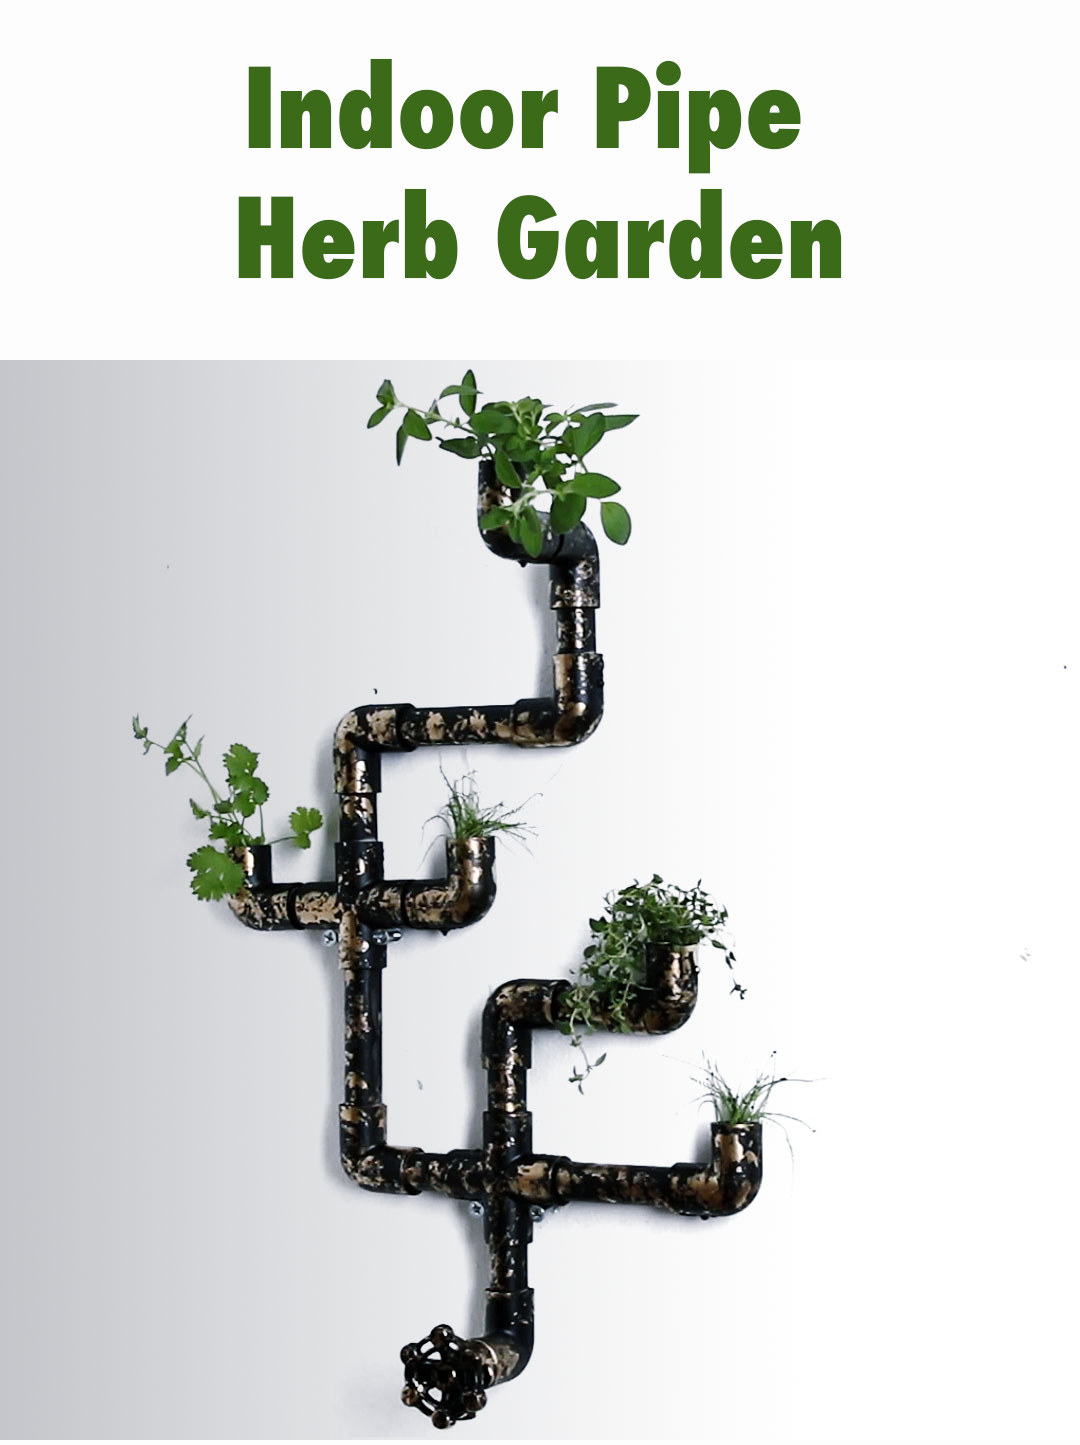 Grow Herbs Indoors And Out With This Stylish Pipe Garden